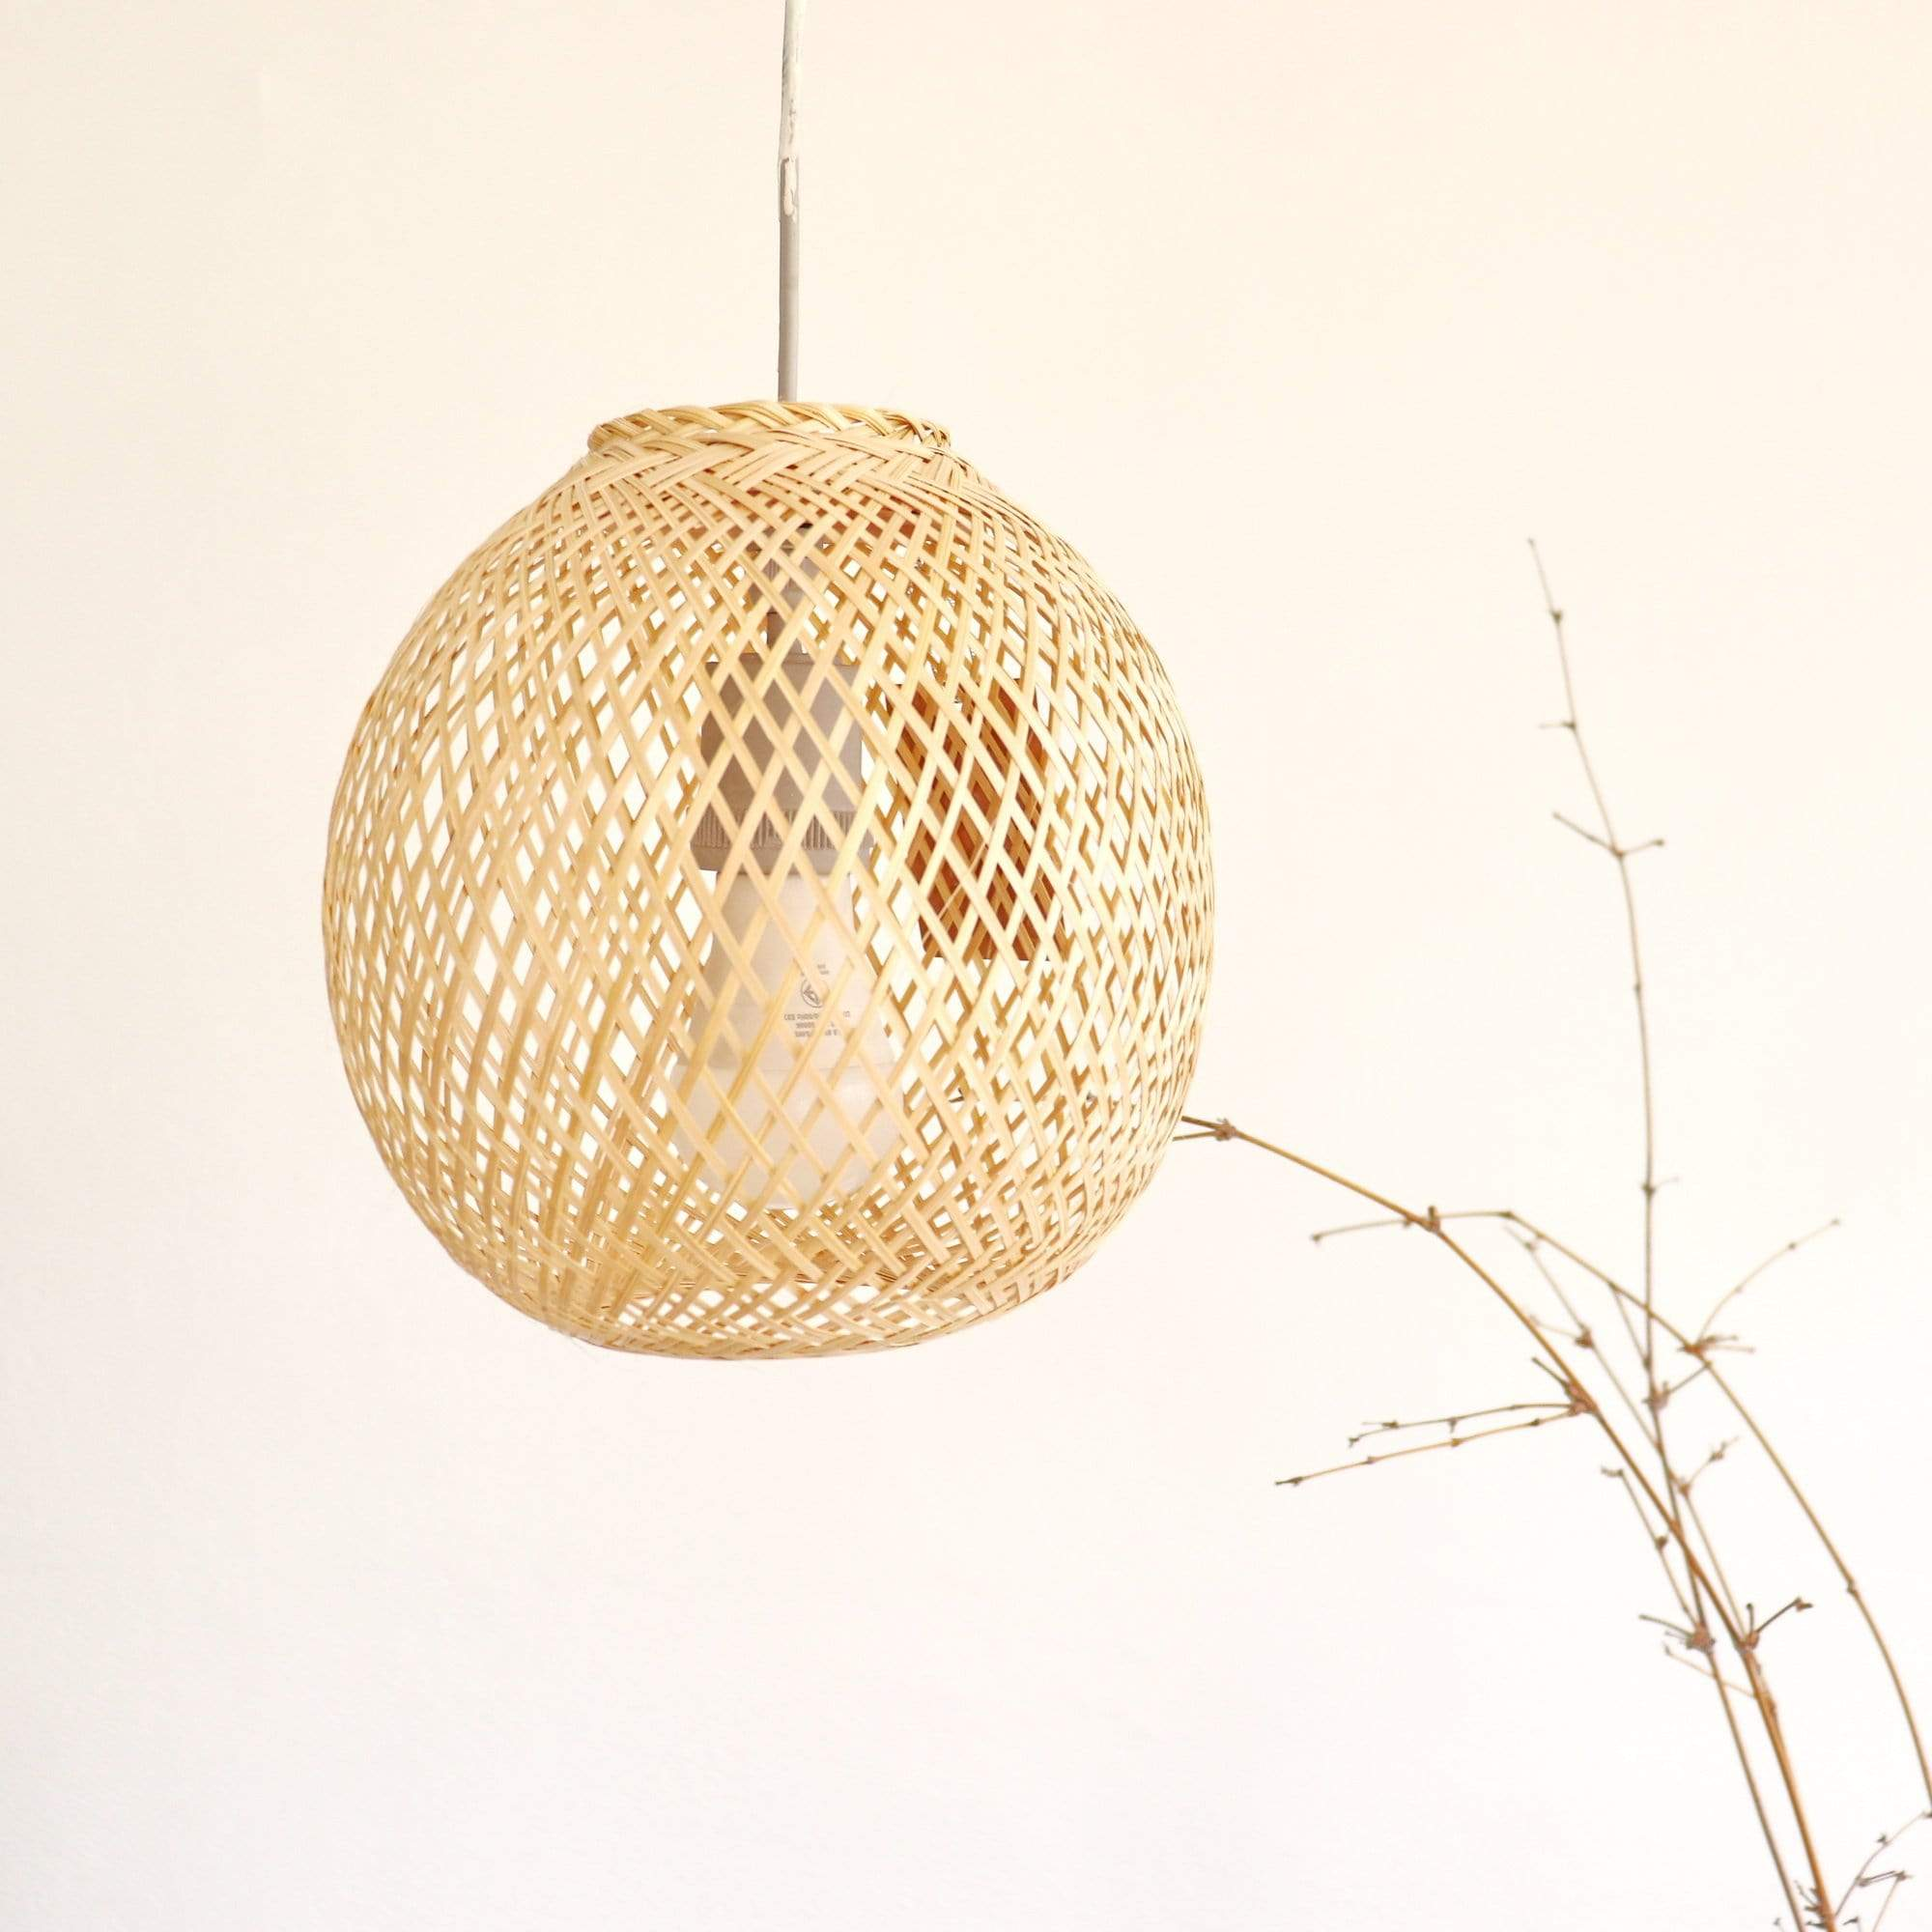 THAIHOMESHOP Bamboo Pendant Light JUNDARA - ROUND BAMBOO LIGHT